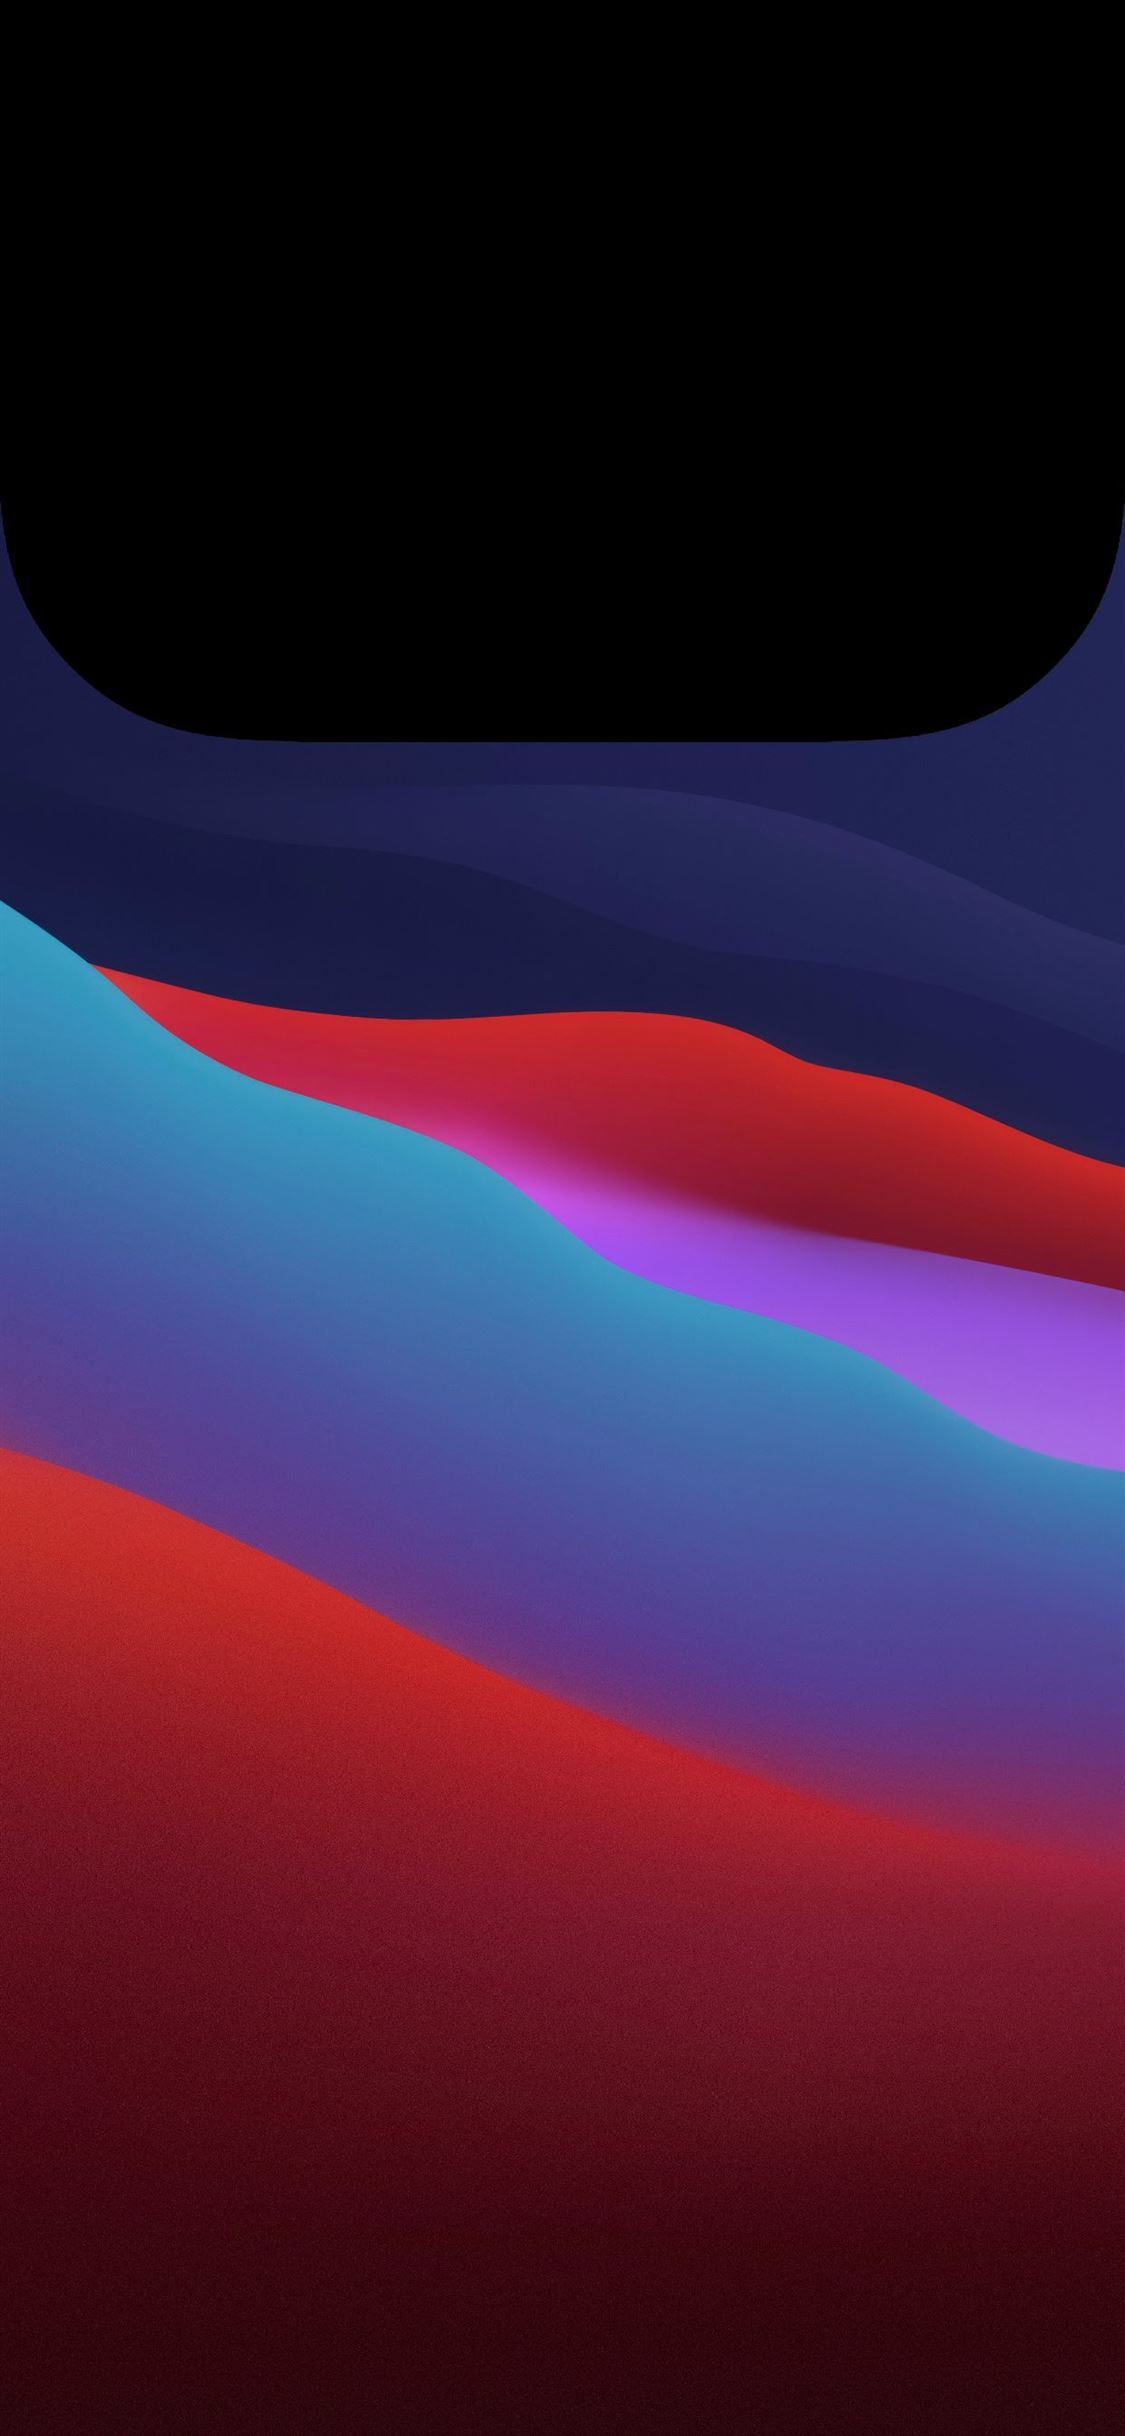 Best Aesthetic Iphone X Wallpapers Hd Ilikewallpaper